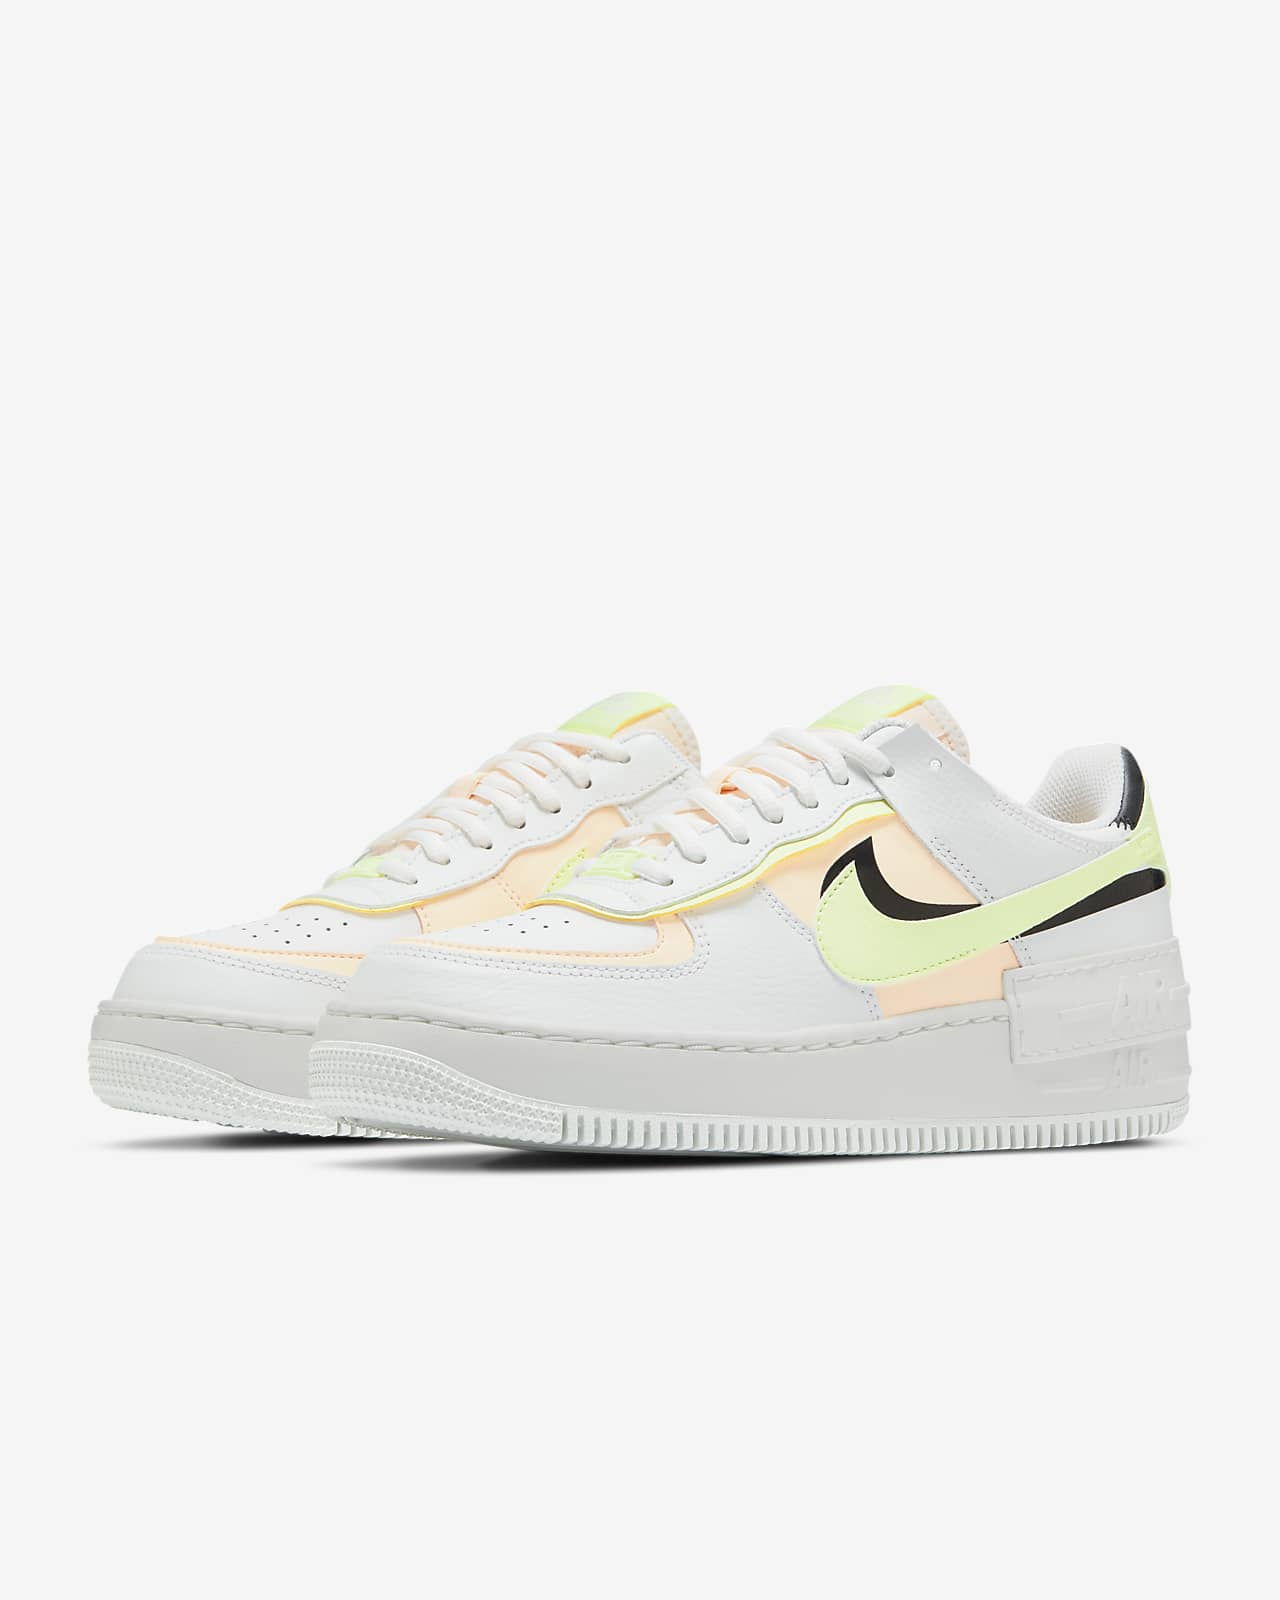 Nike Air Force 1 Shadow Women S Shoe Nike Ph Double detailing from the eyelets to the swooshes to the platform height redefines a sneaker inspired by the force of change women bring to their communities. nike air force 1 shadow women s shoe